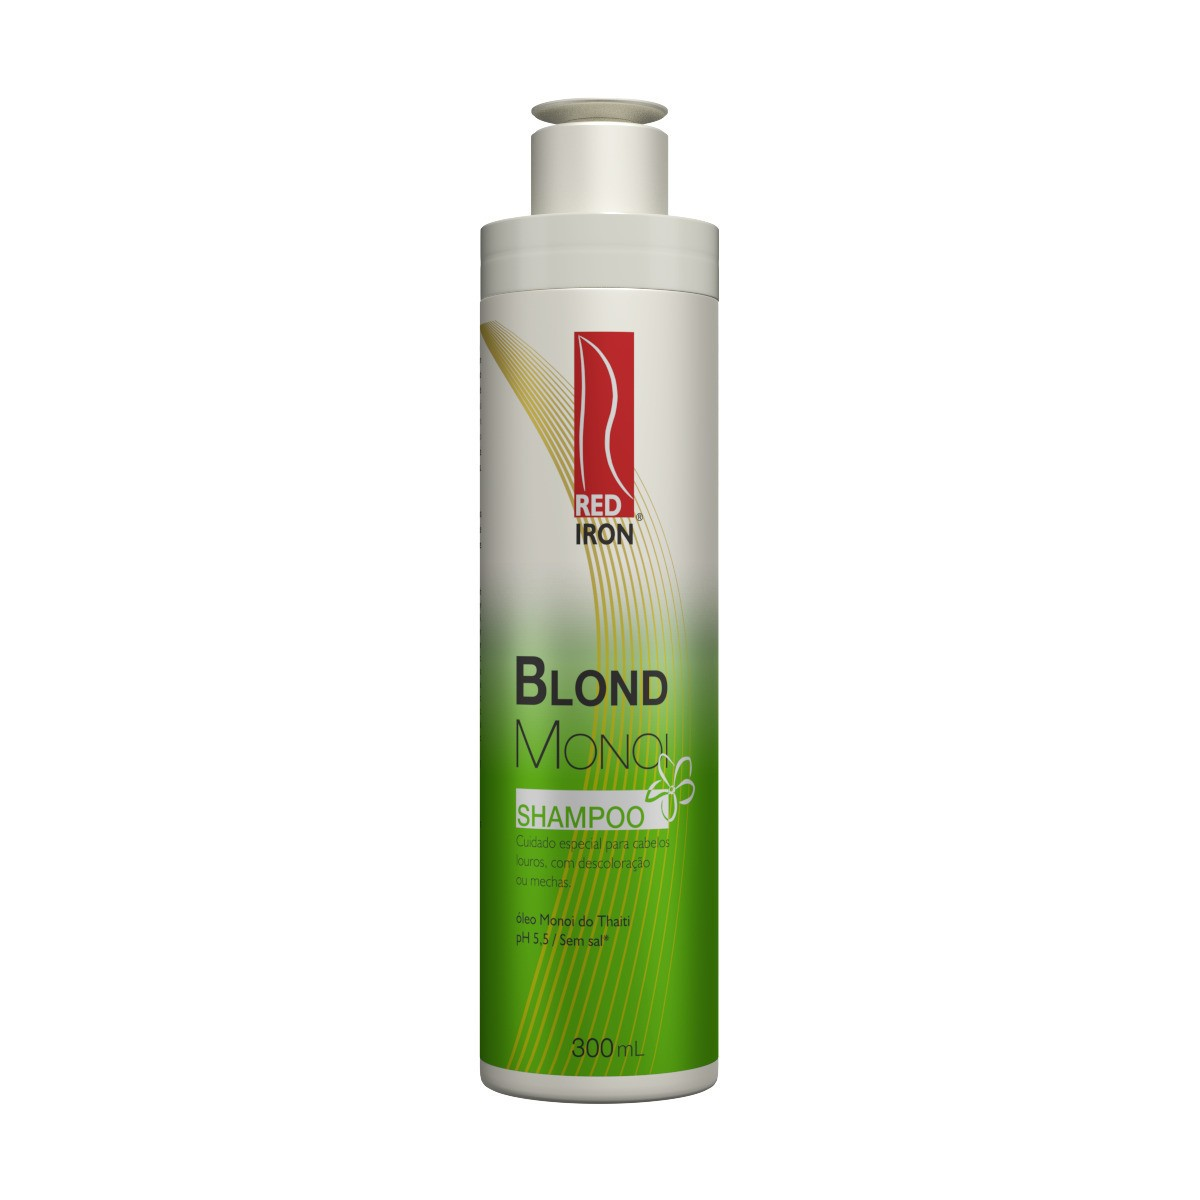 Red Iron Shampoo Blond Monoi 300ml